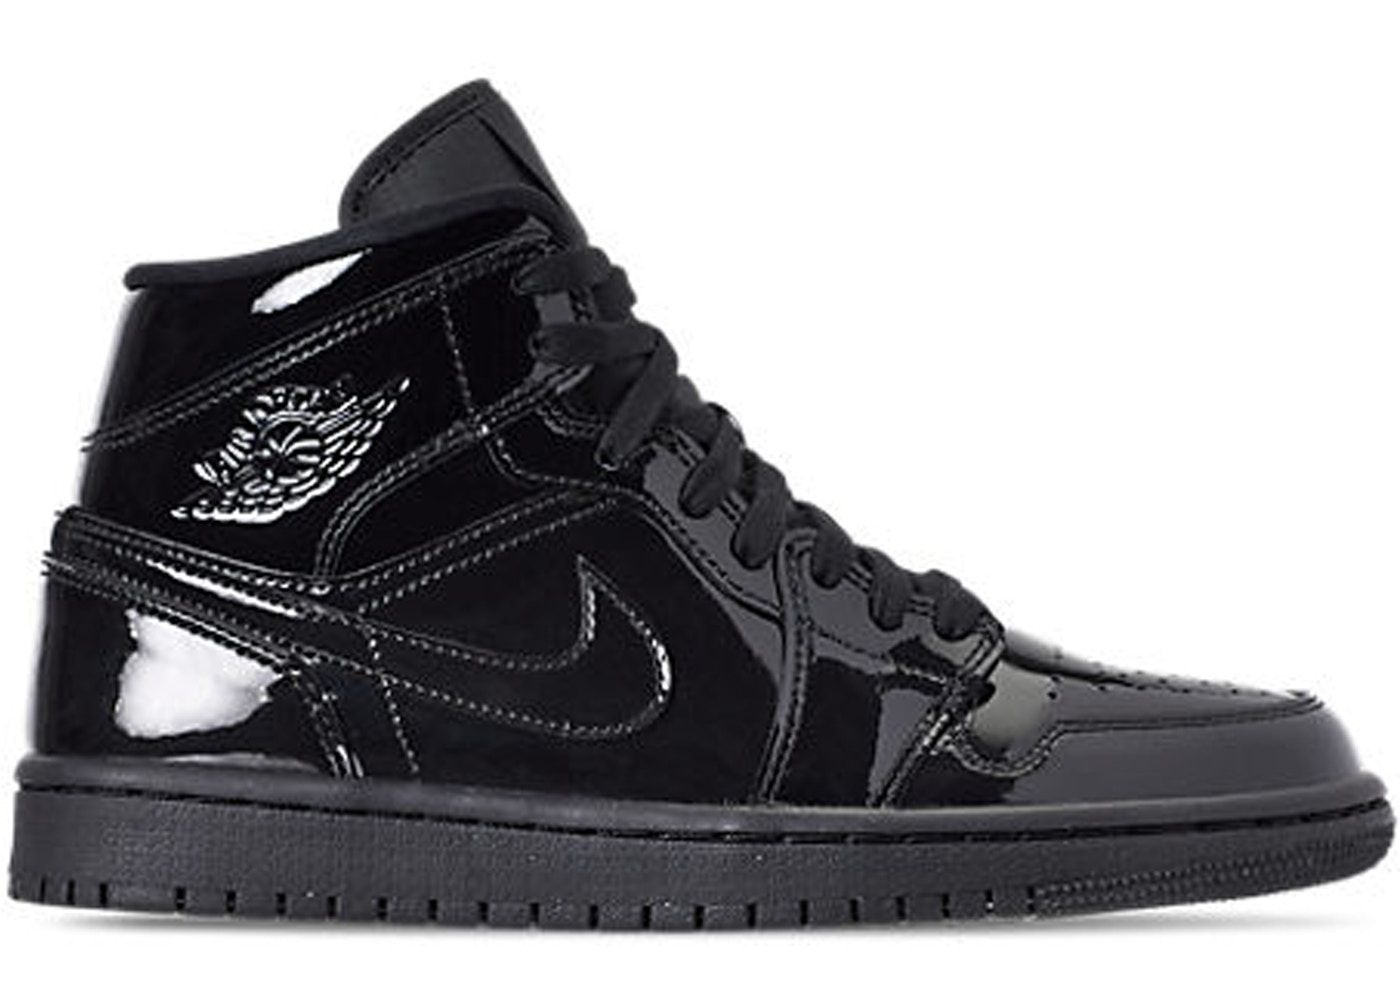 da6843d2 Check out the Jordan 1 Mid SE Triple Black Patent (W) available on StockX